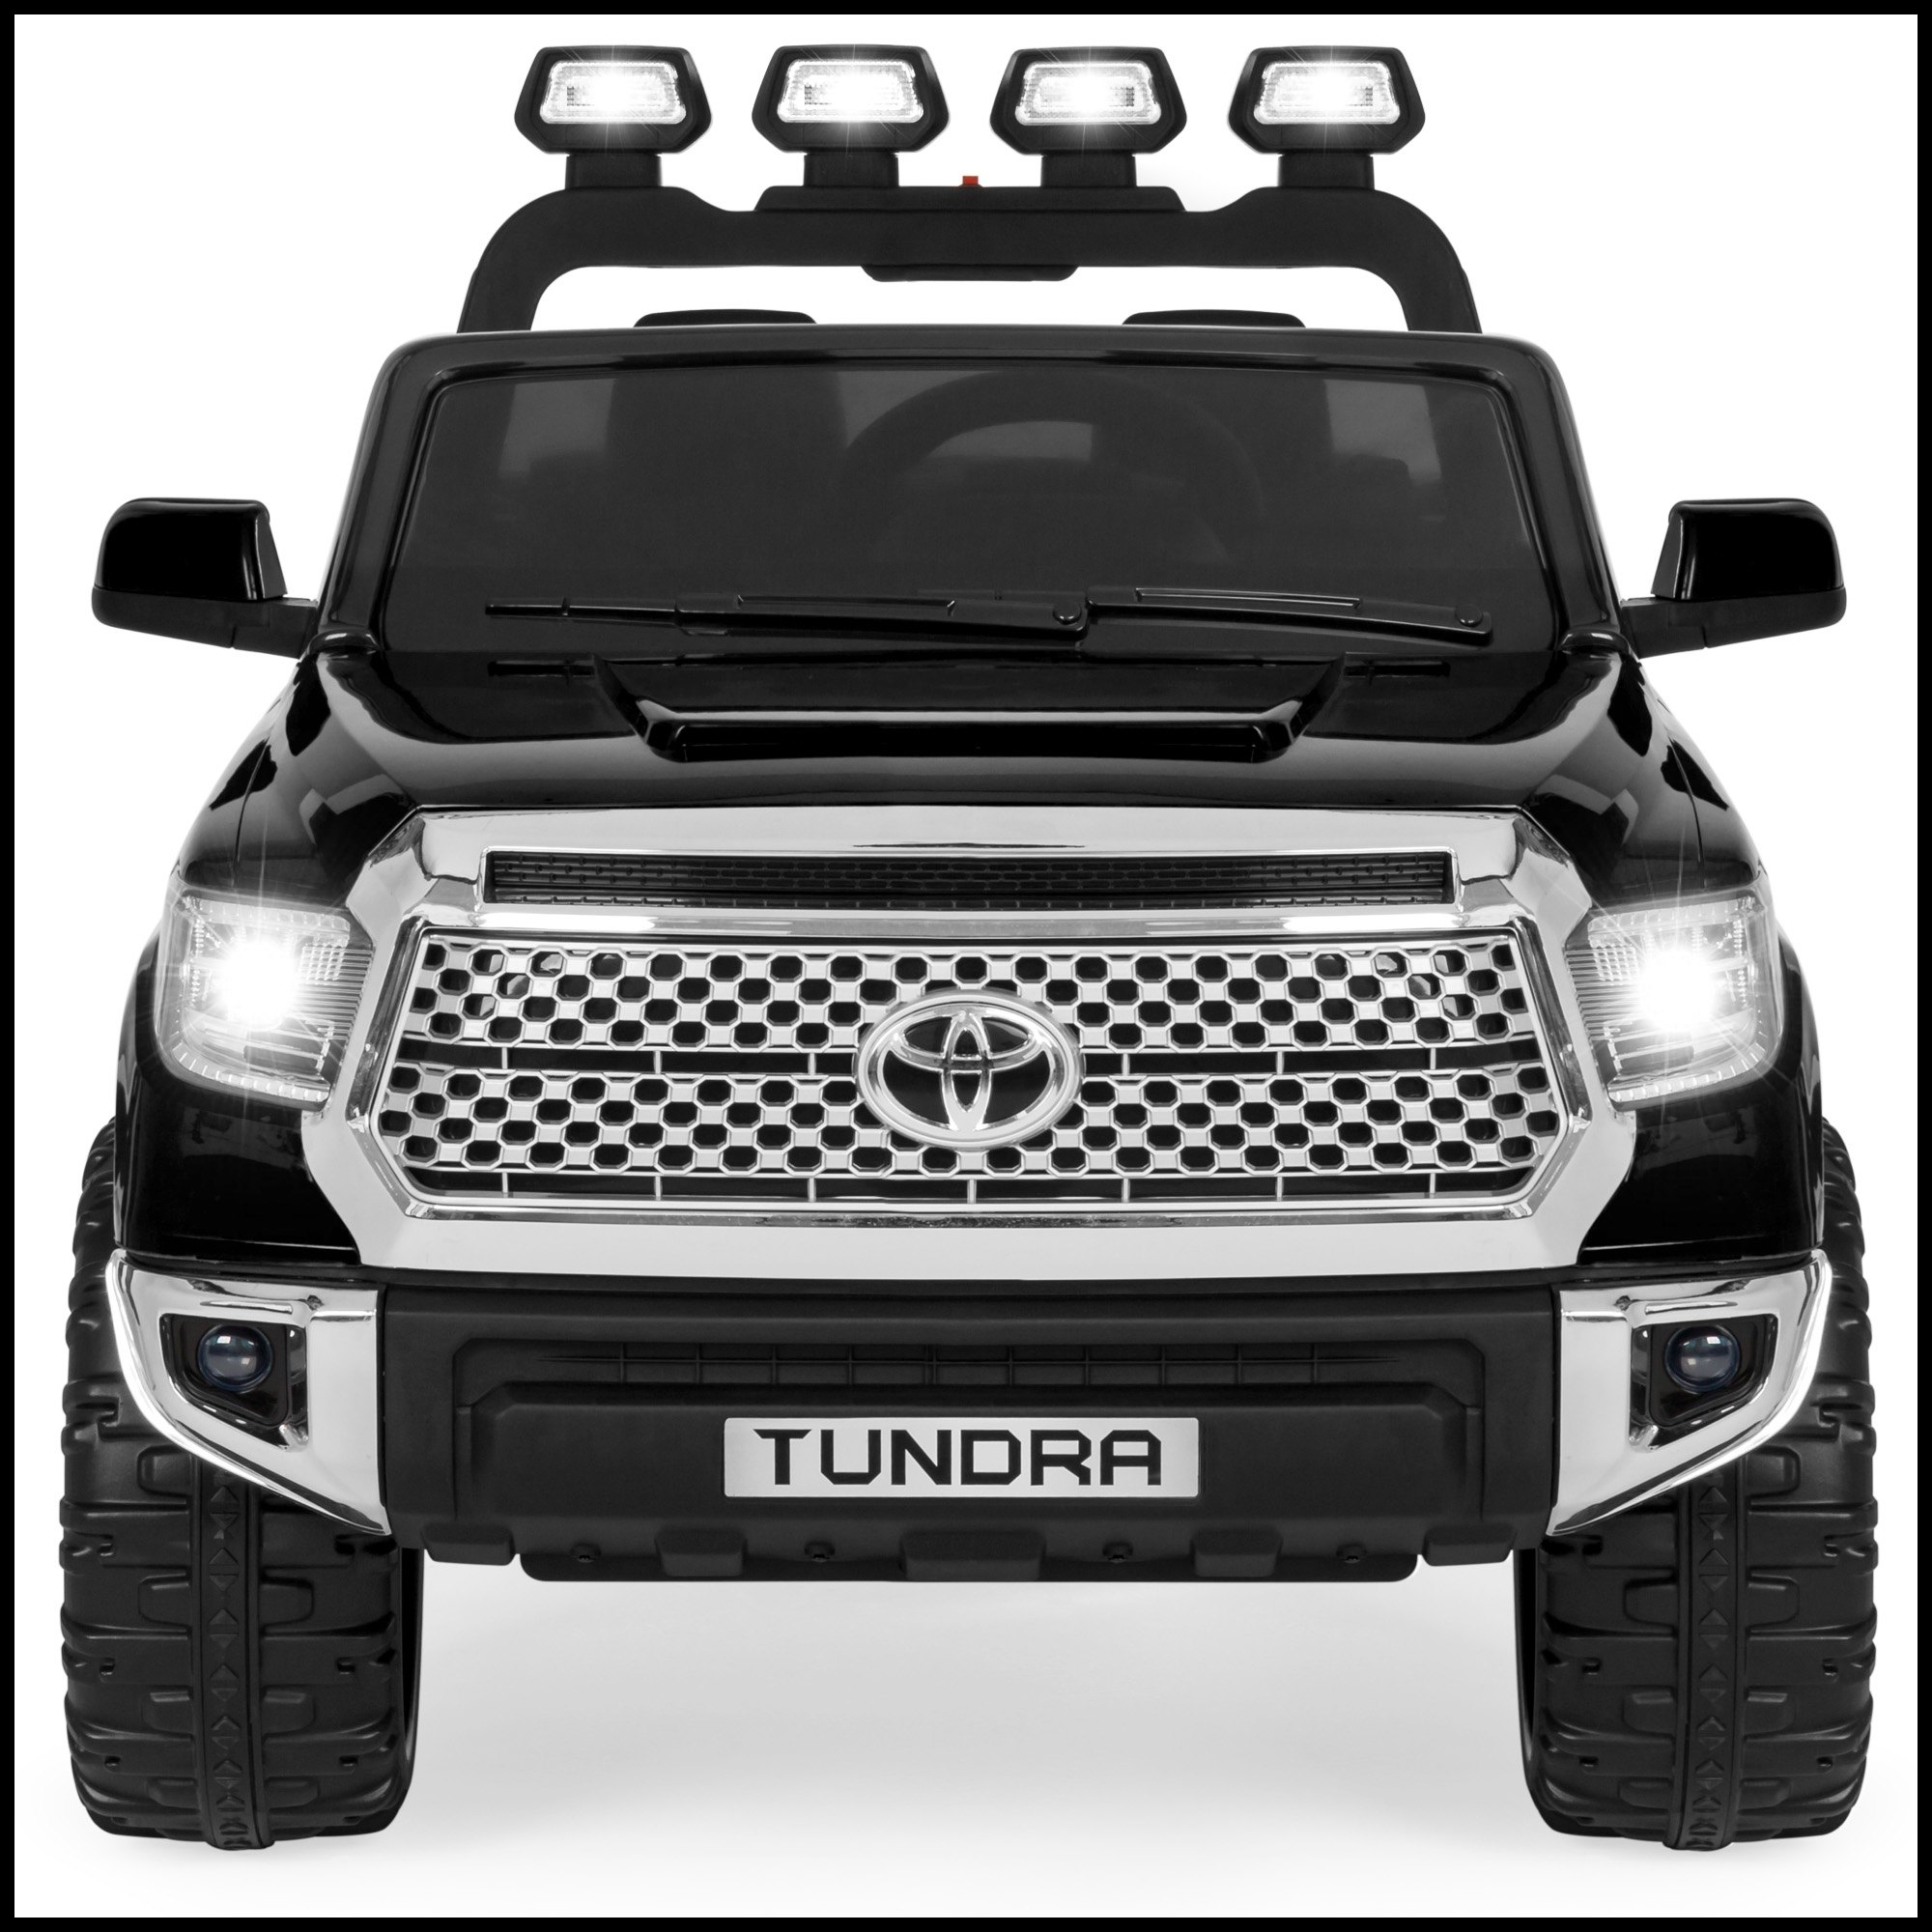 Best Choice Products 12V Kids Battery Powered Remote Control Toyota Tundra Ride Truck Black